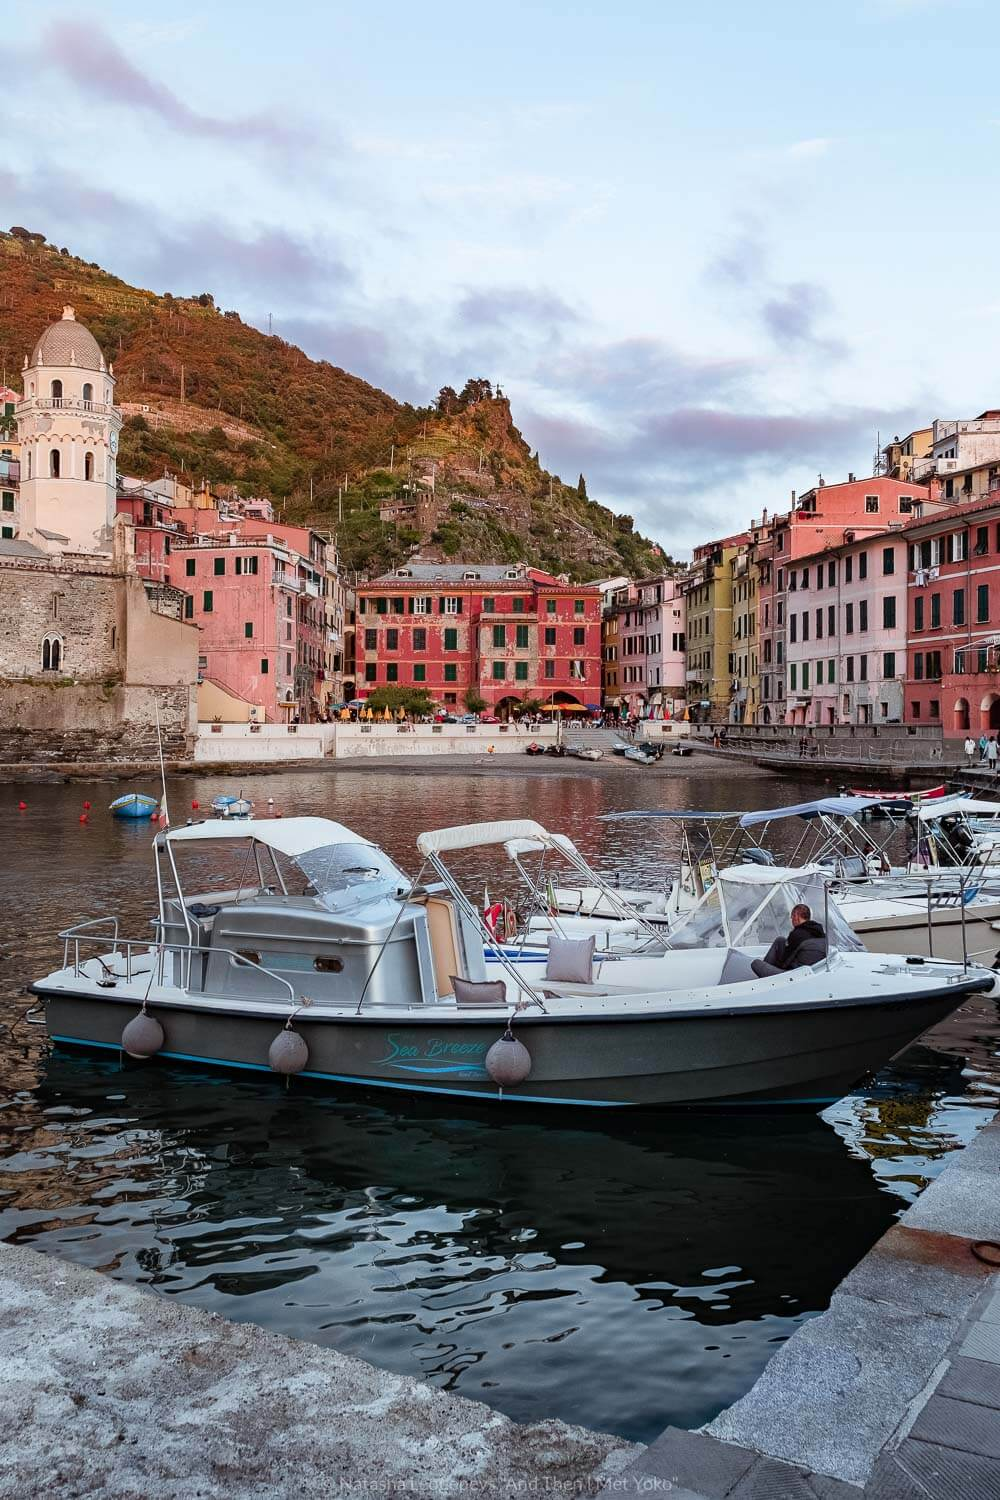 """The port of Vernazza, Cinque Terre. Travel photography and guide by © Natasha Lequepeys for """"And Then I Met Yoko"""". #cinqueterre #italy #travelphotography"""